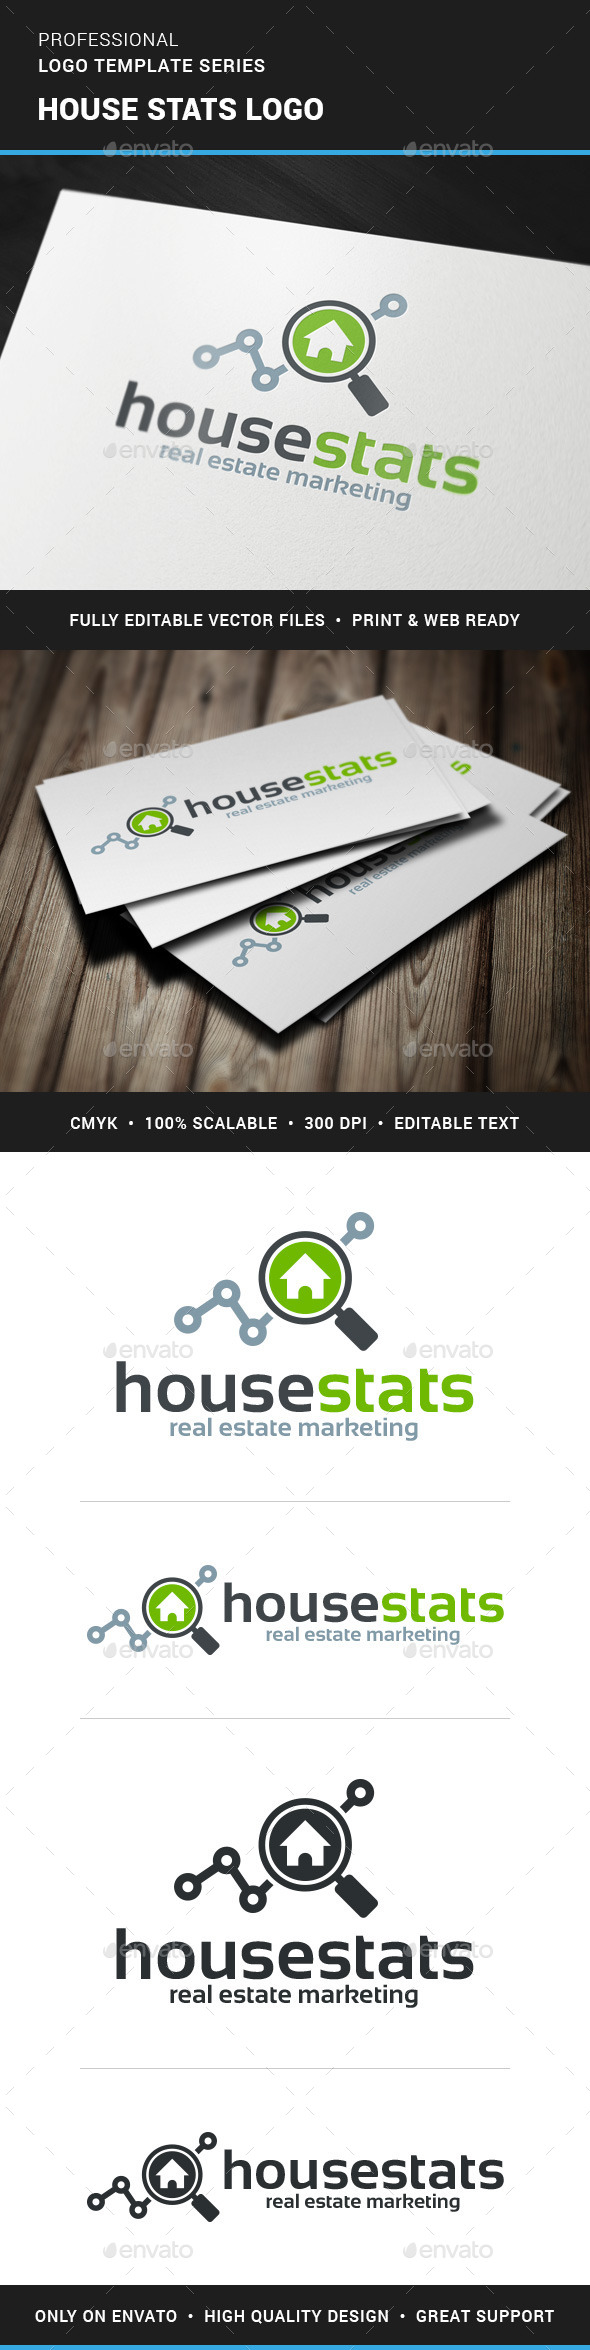 GraphicRiver House Stats Logo Template 11409037